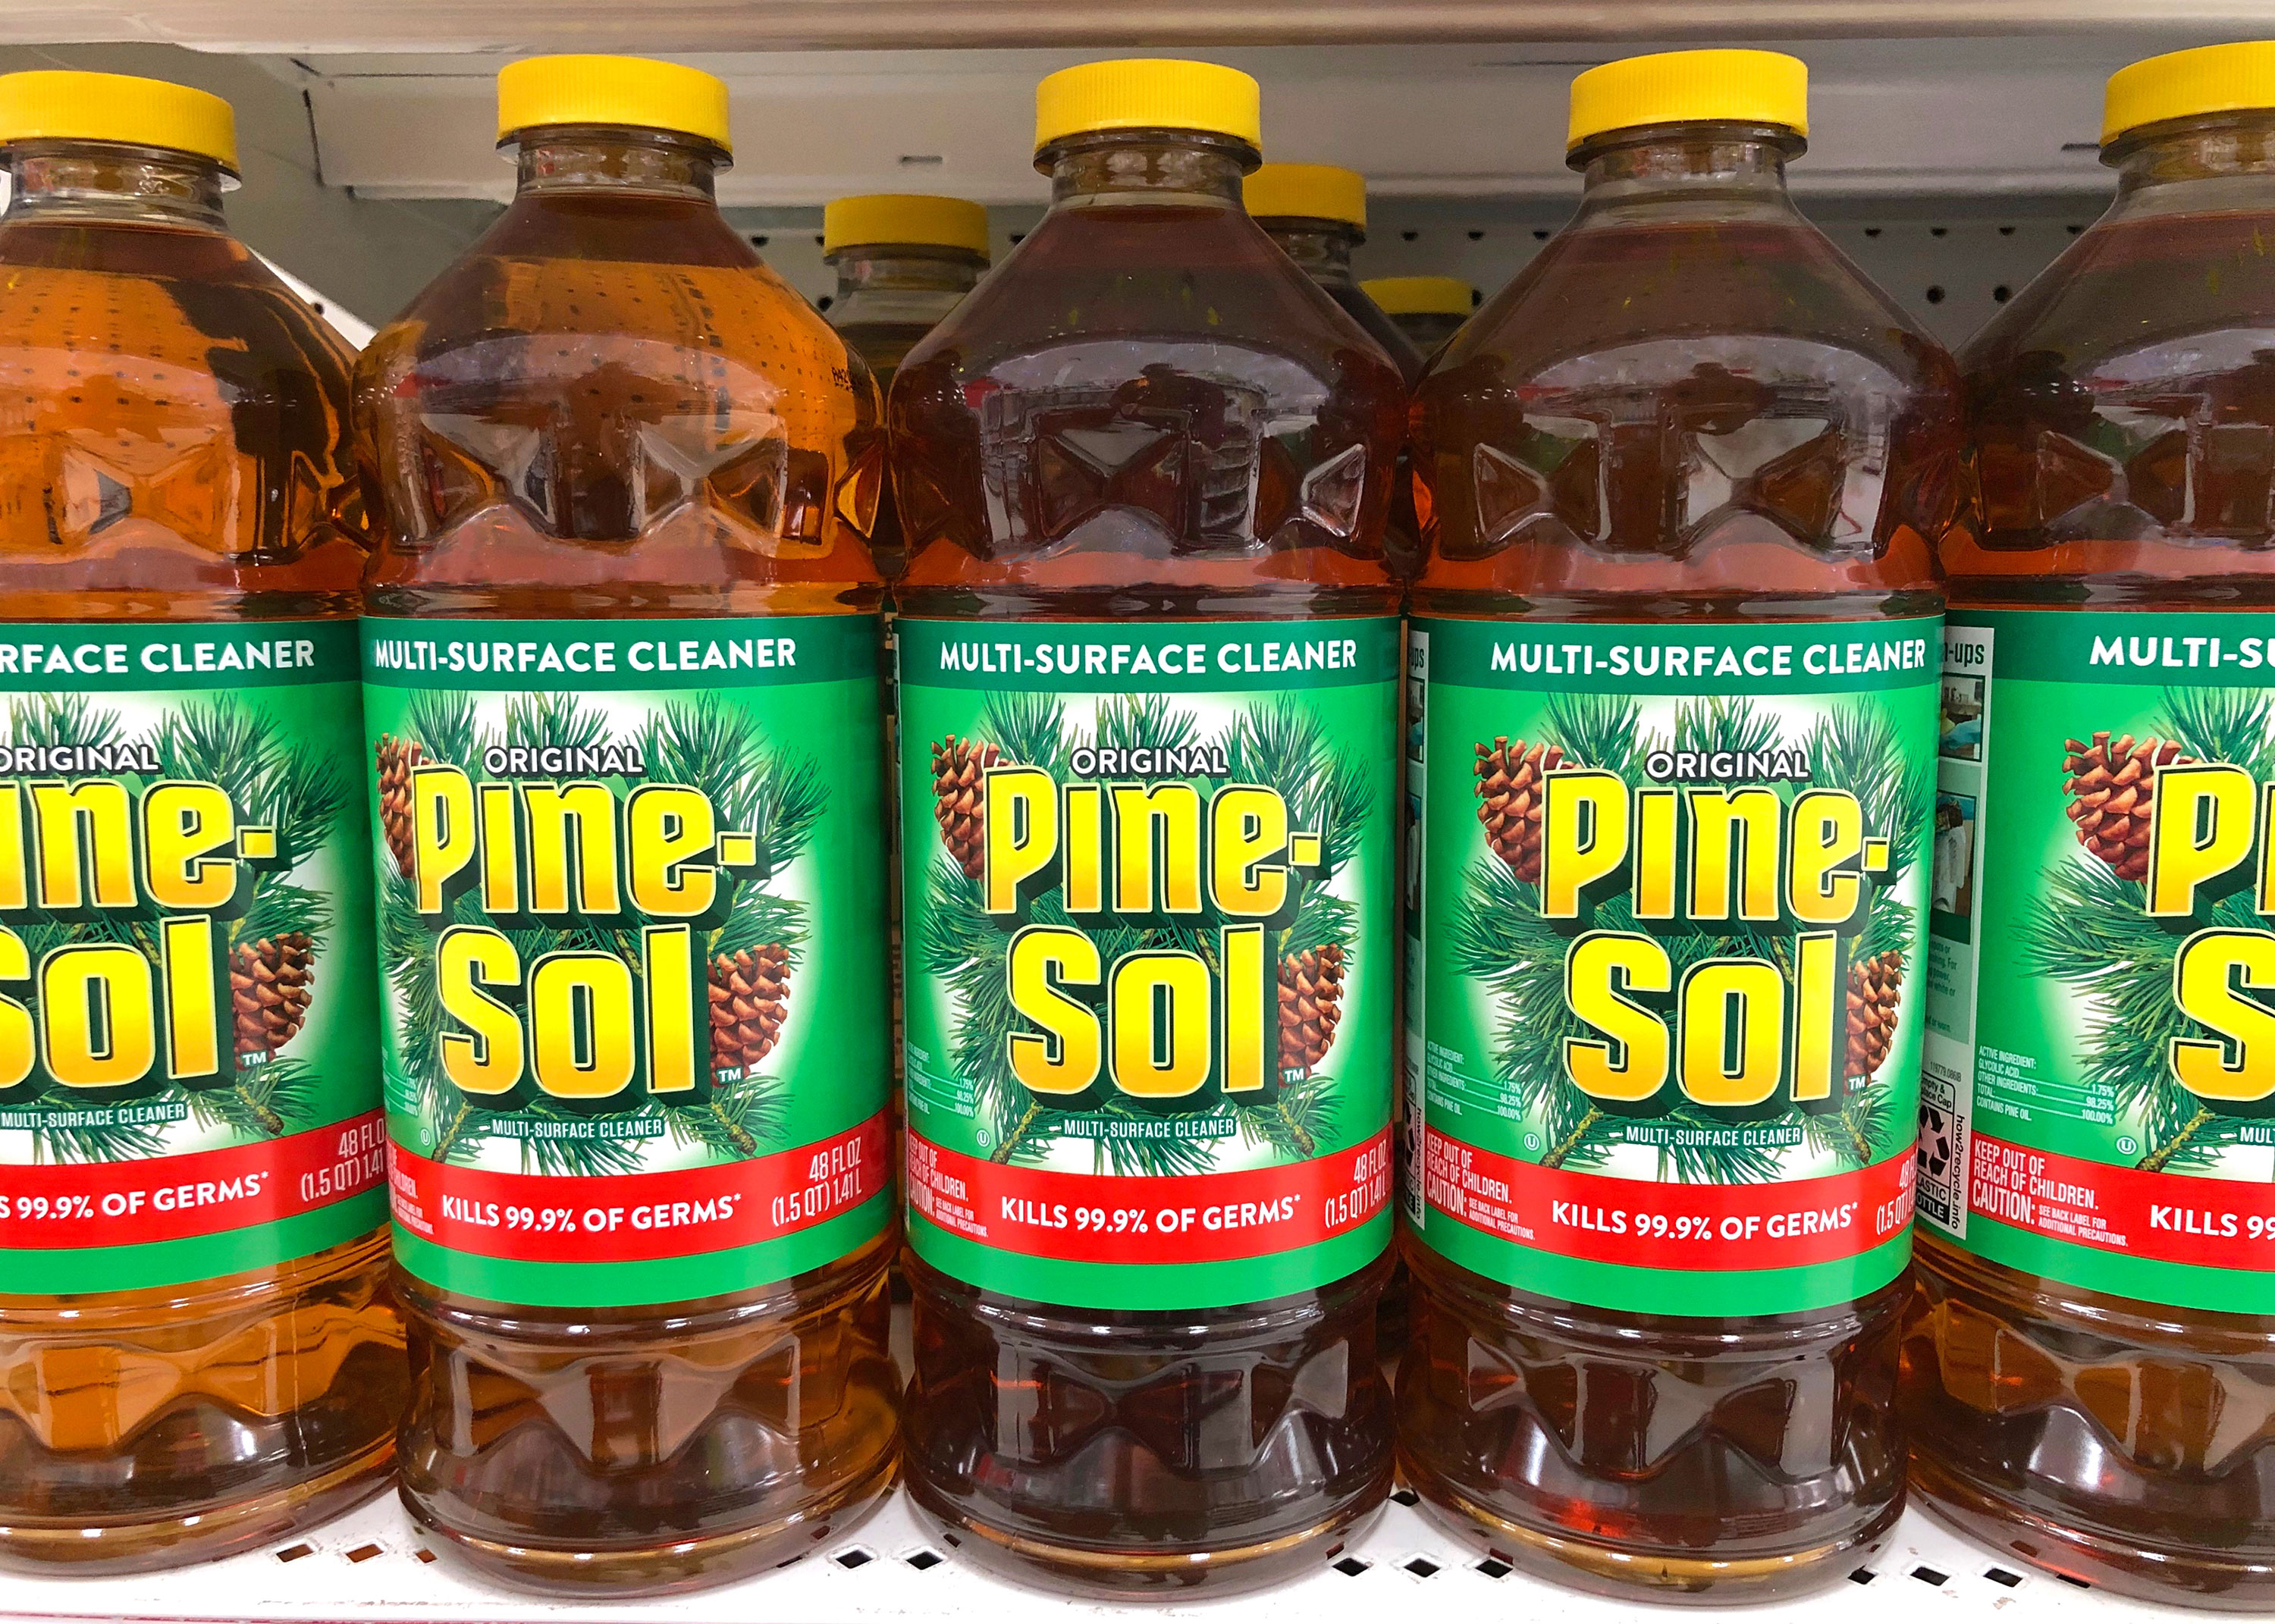 Pine-Sol cleaner has been approved to kill coronavirus on hard surfaces